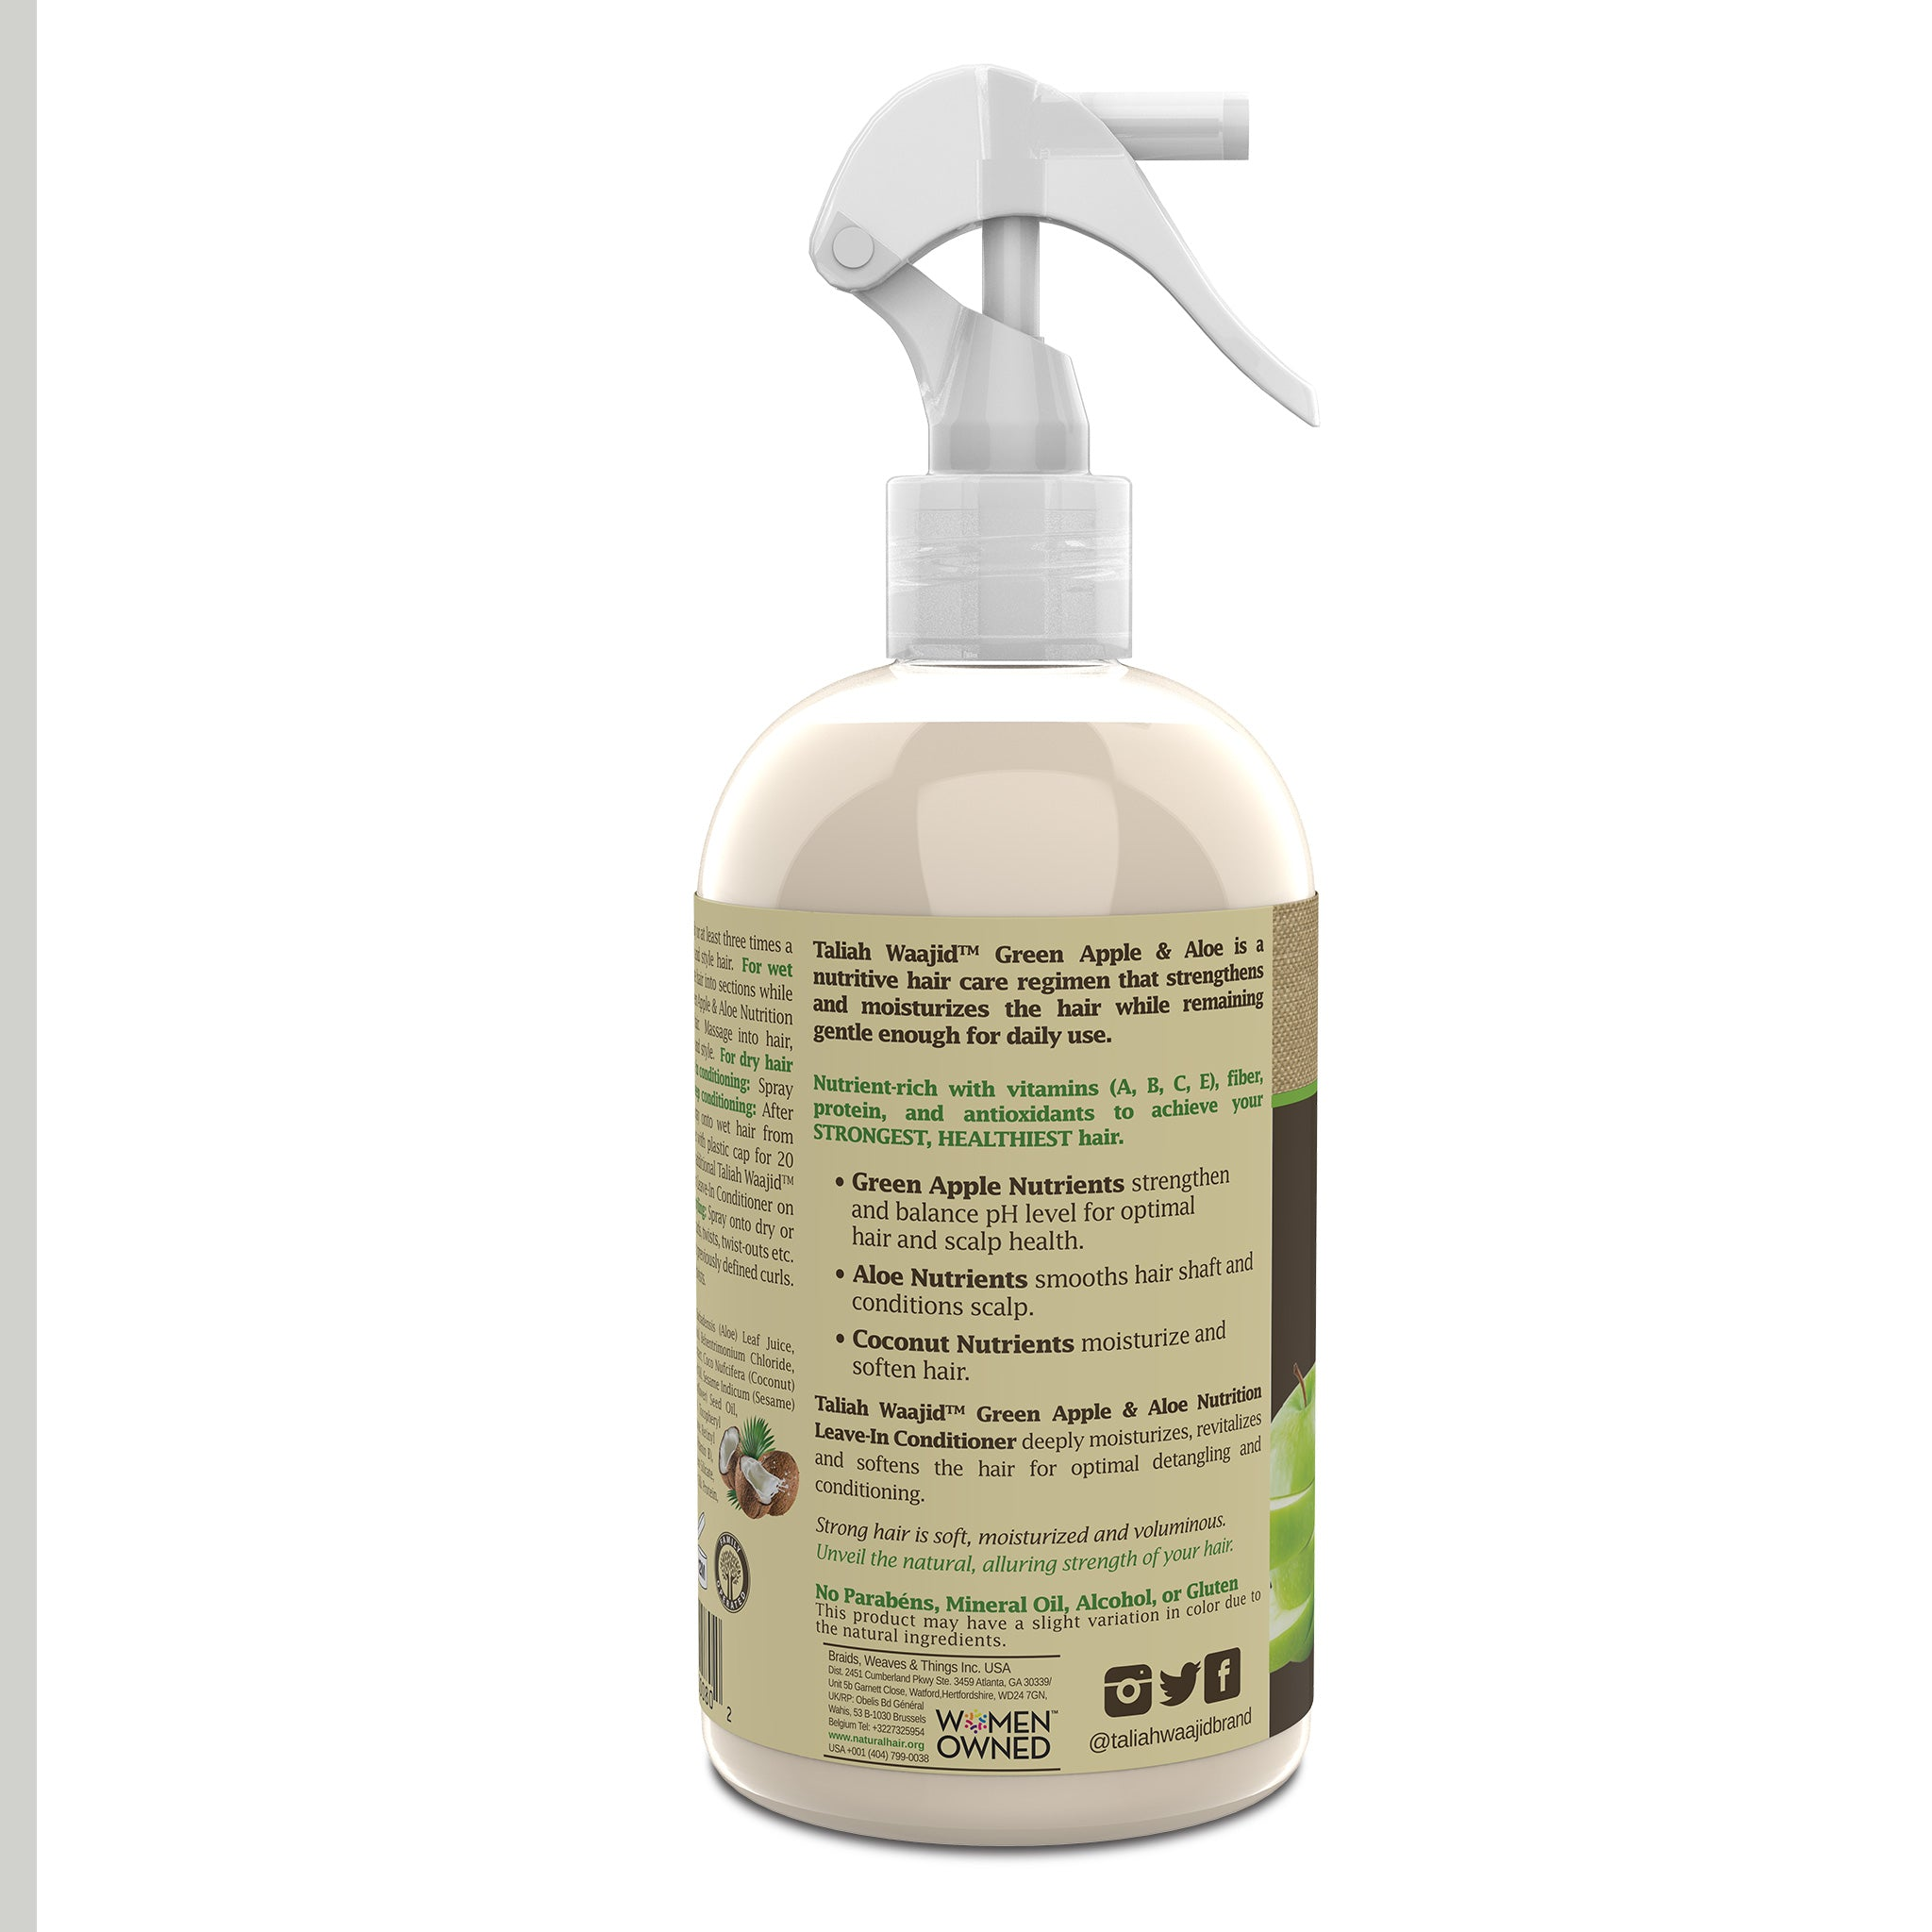 Green Apple & Aloe Nutrition Leave-In Conditioner 12oz Left View